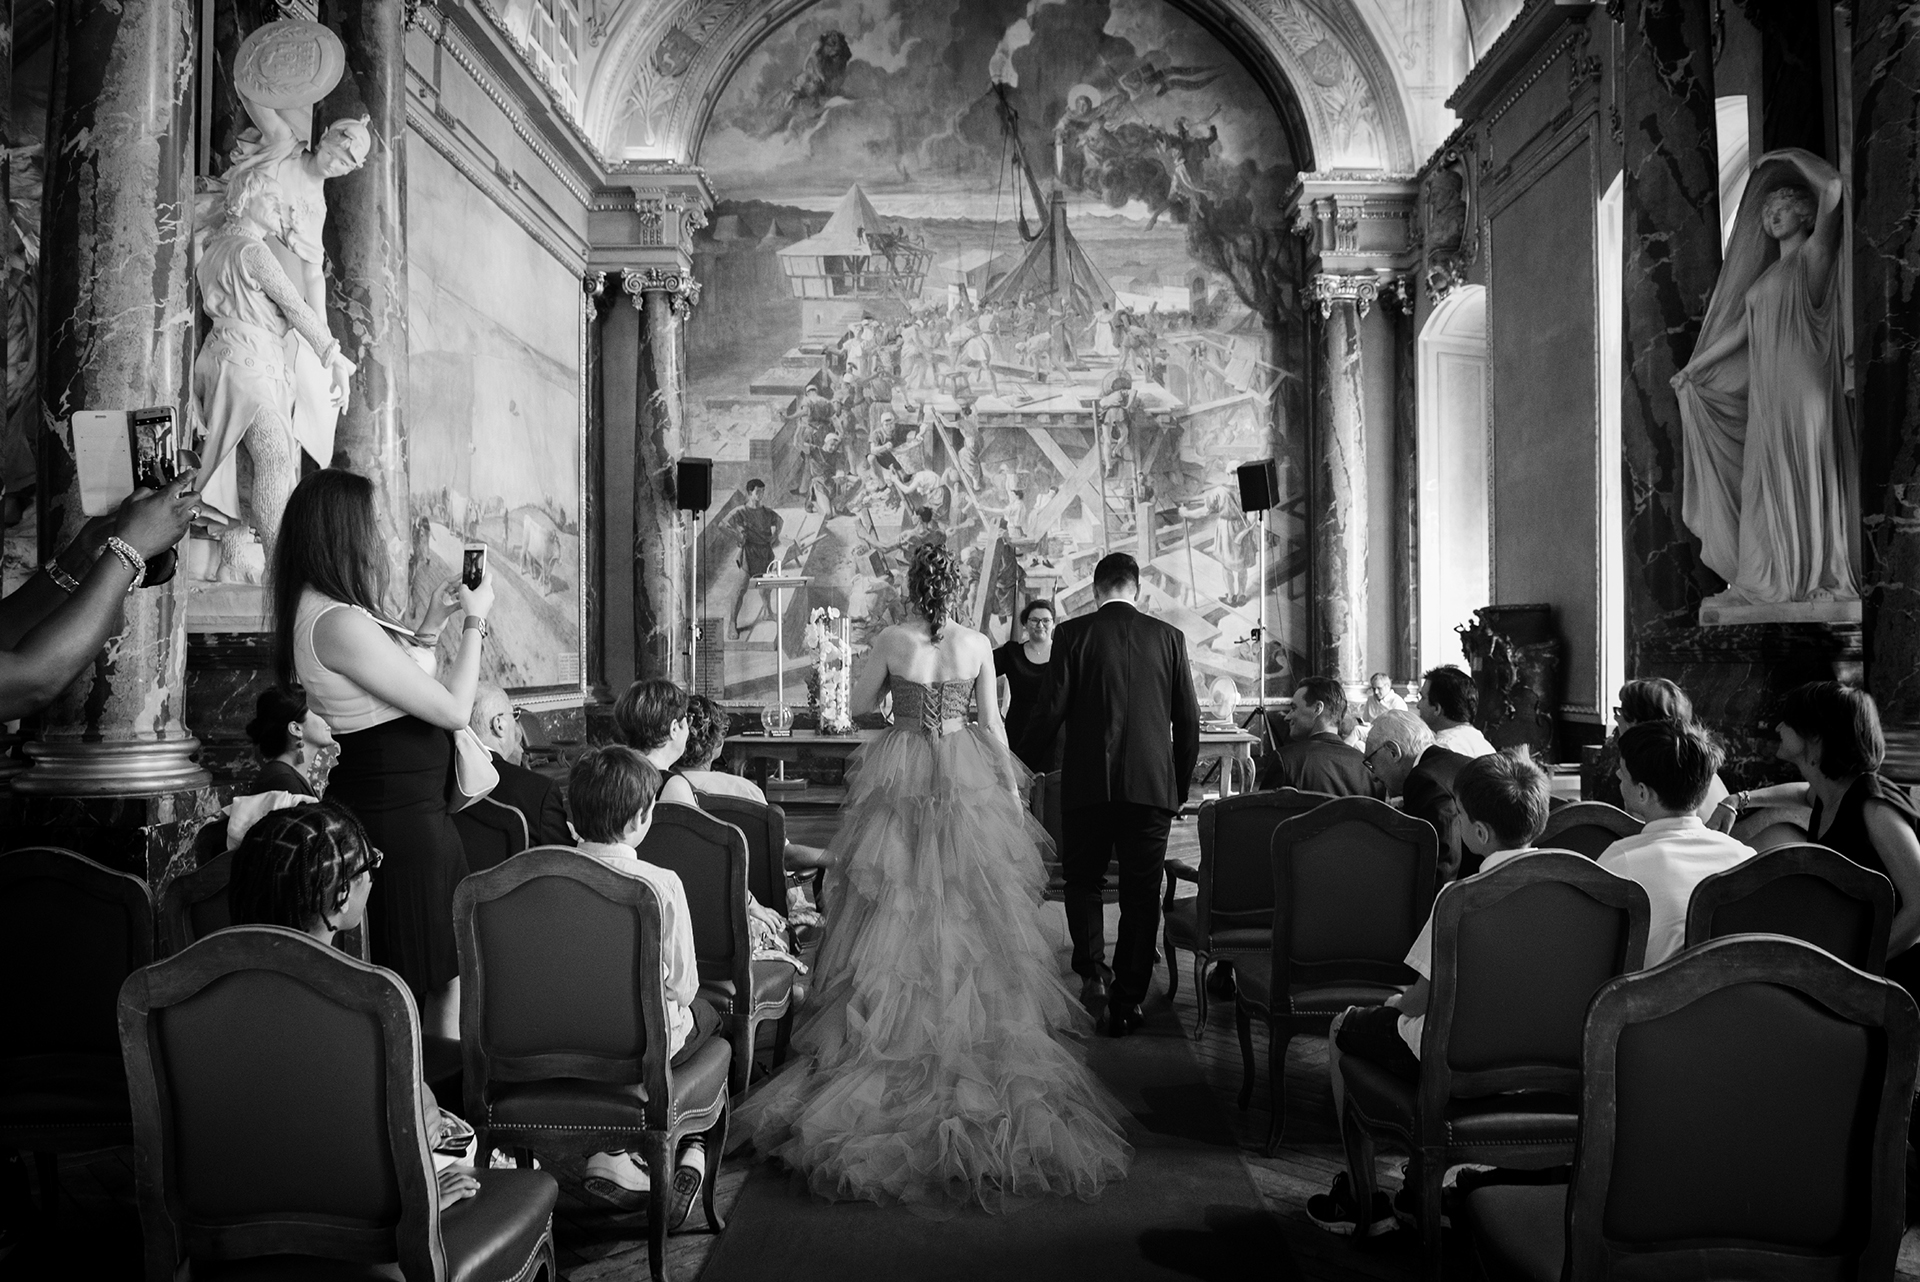 Toulouse City Hall, France Elopement Photo | The bride and groom walk down the aisle together